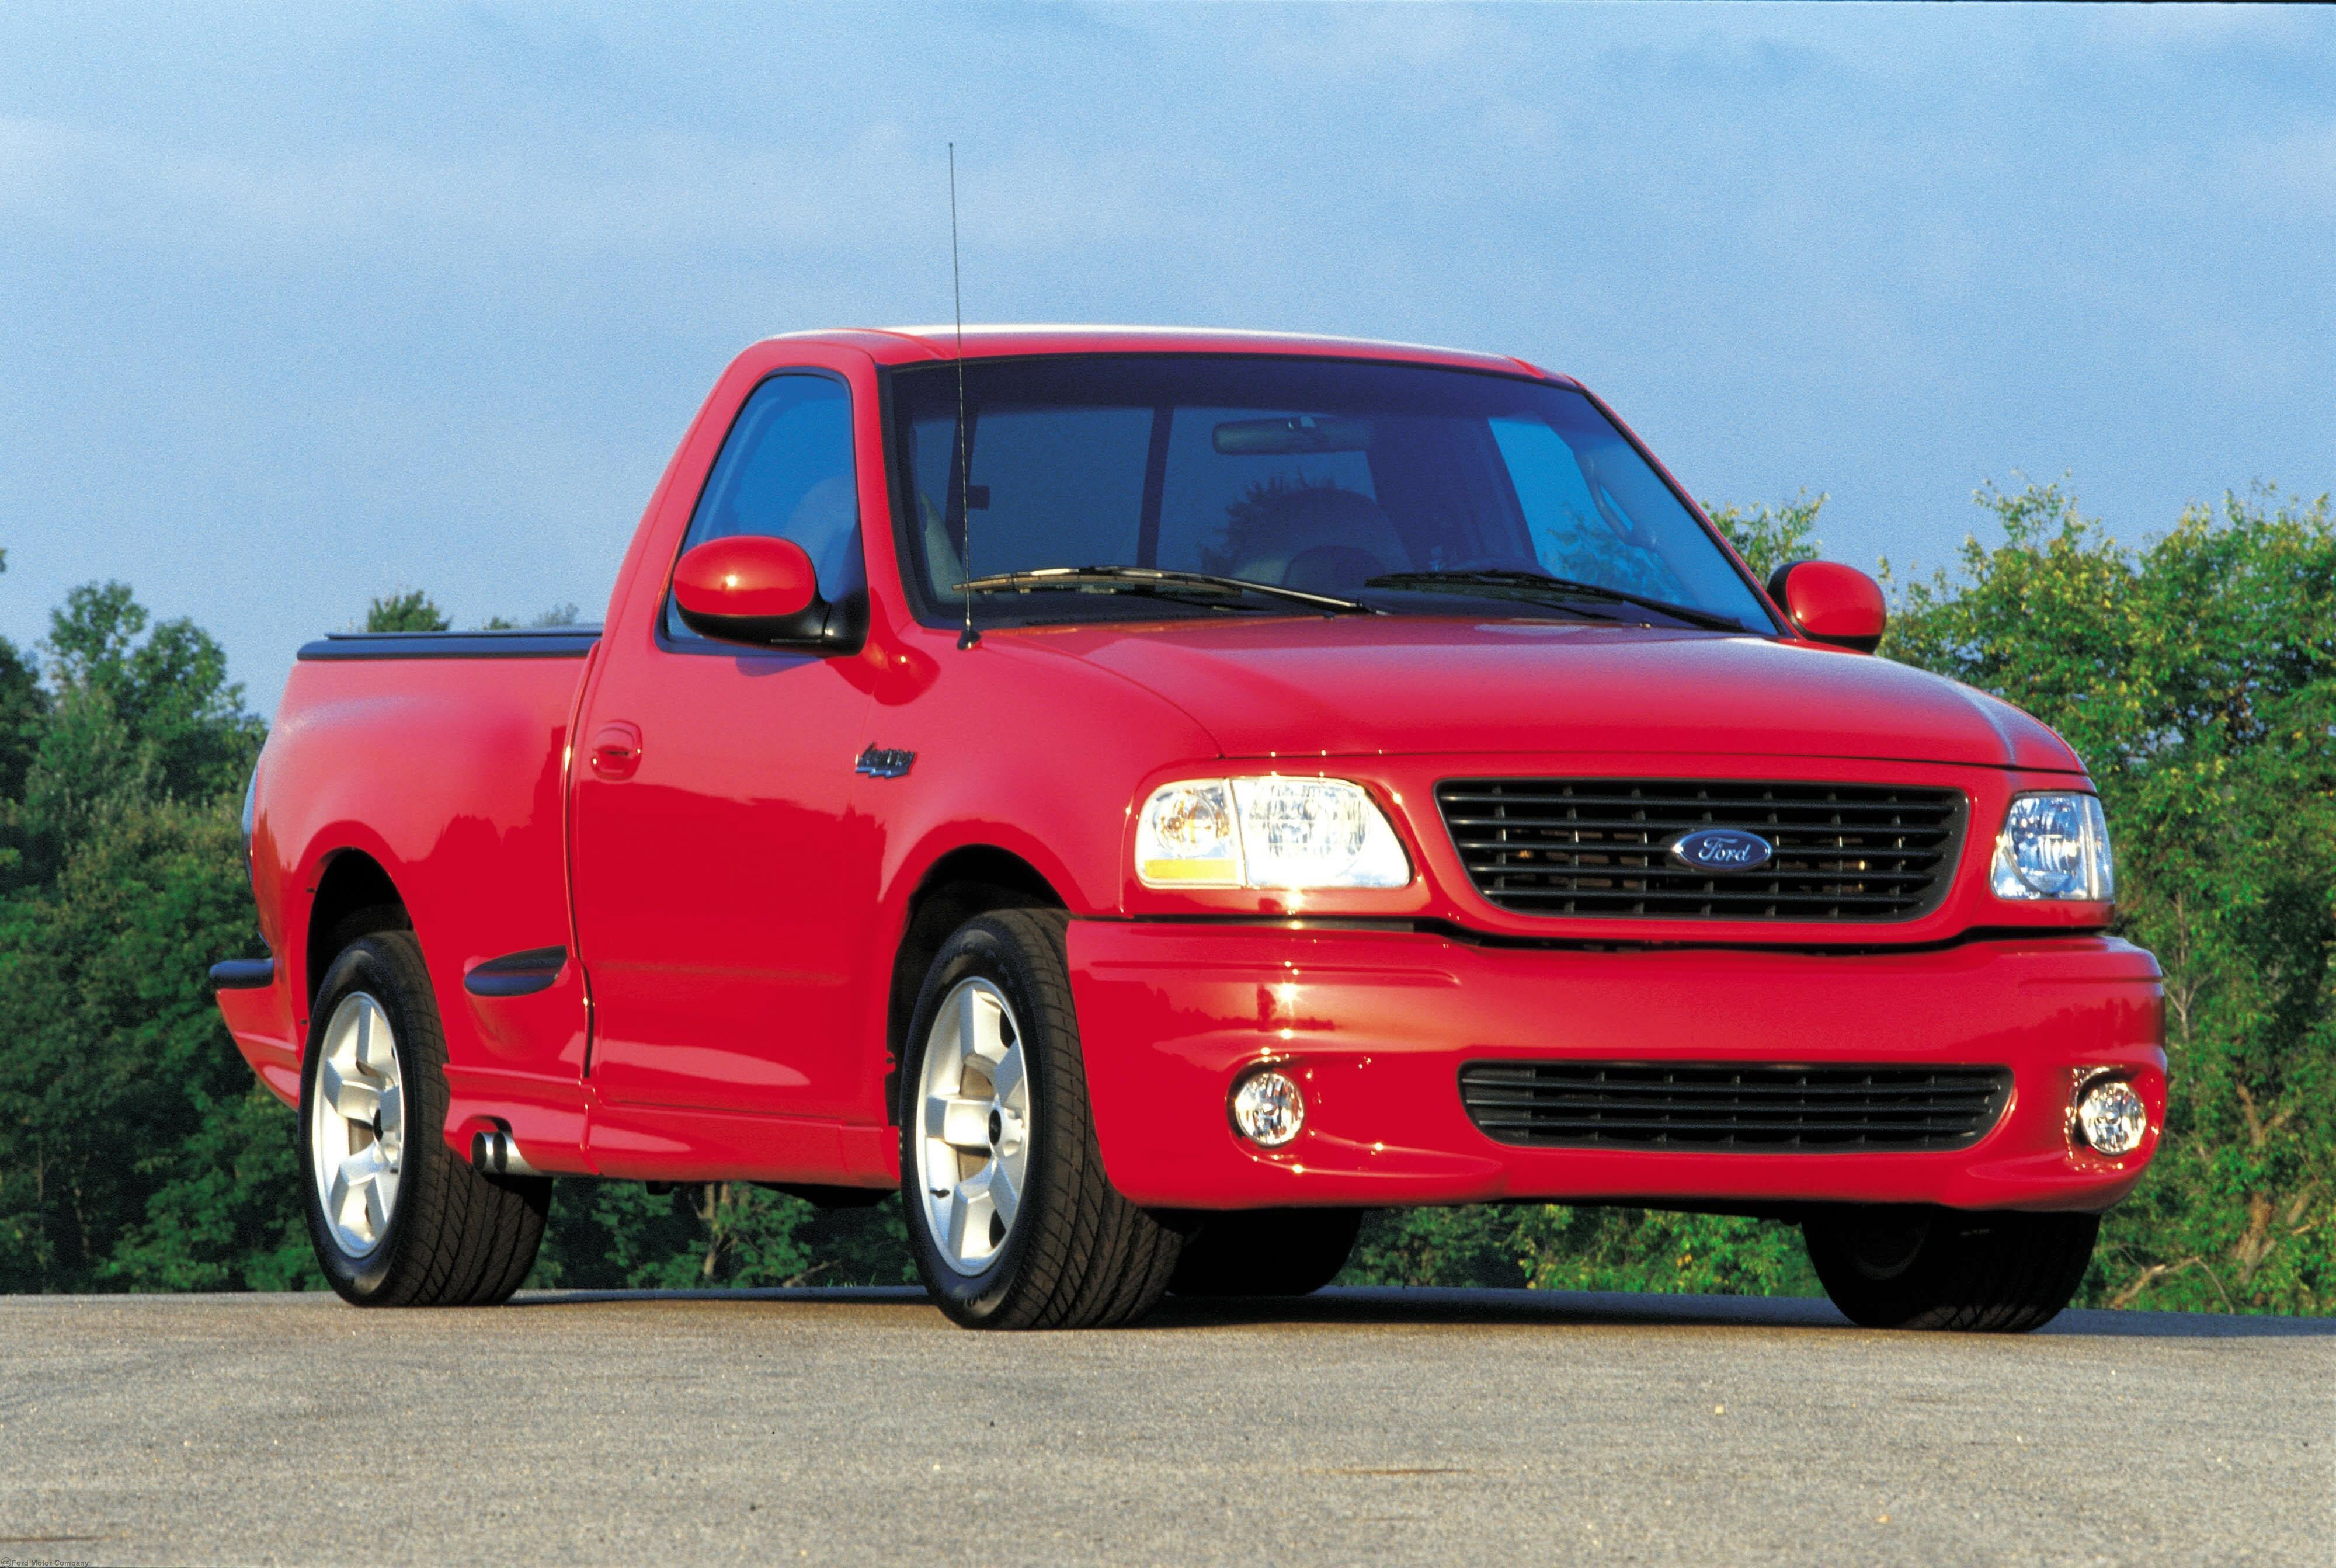 2001 Ford Lightning TCB & 1993 u2013 1995 and 1999 u2013 2004 Ford F-150 SVT Lightning | Tommyu0027s Car Blog